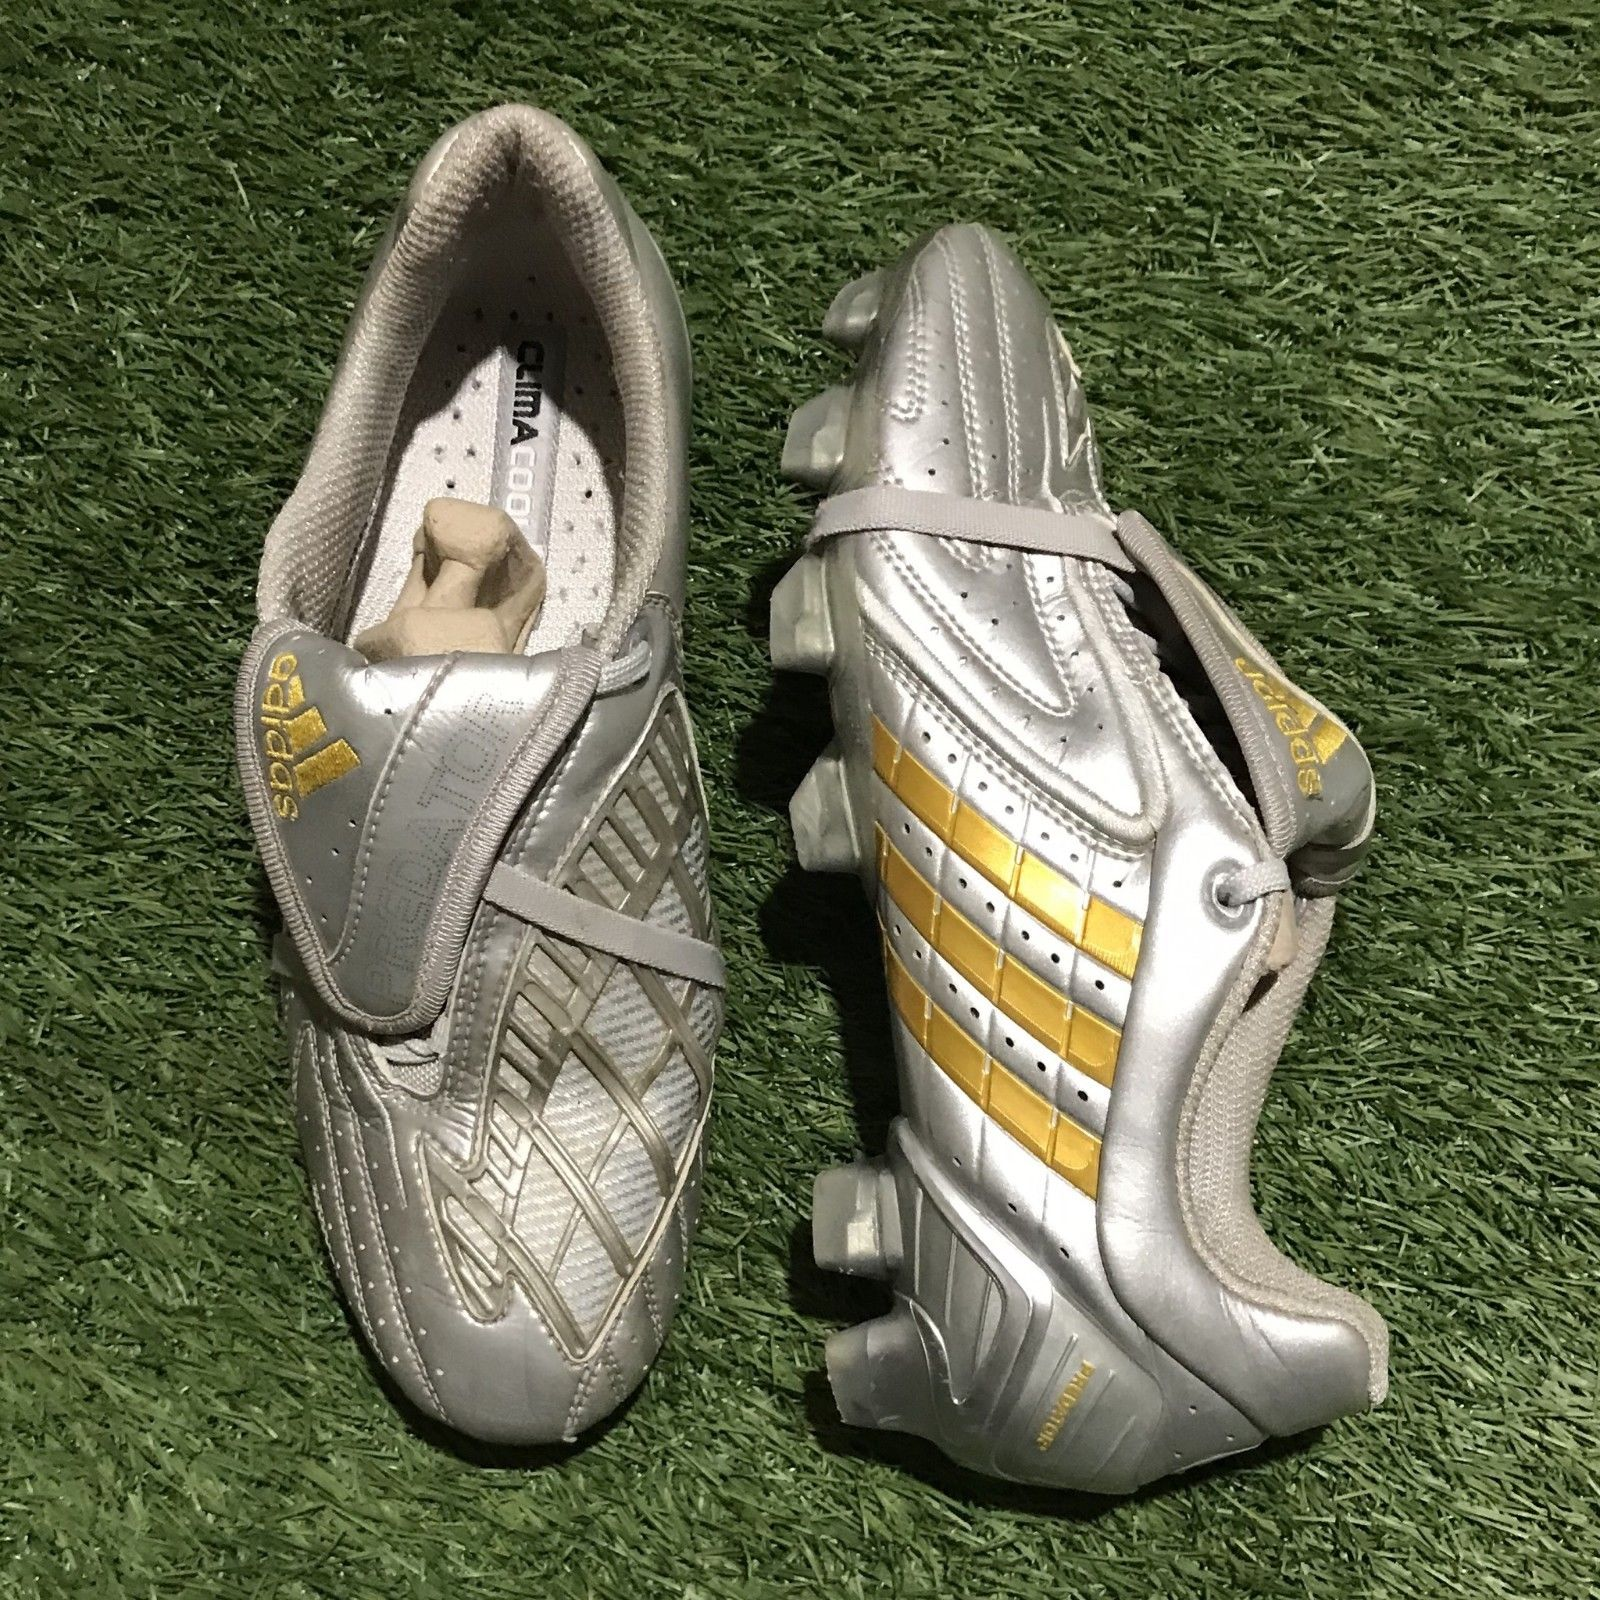 ab4f880fc0cf Adidas Predator Powerswerve - Silver   Gold (David Beckham Exclusive)